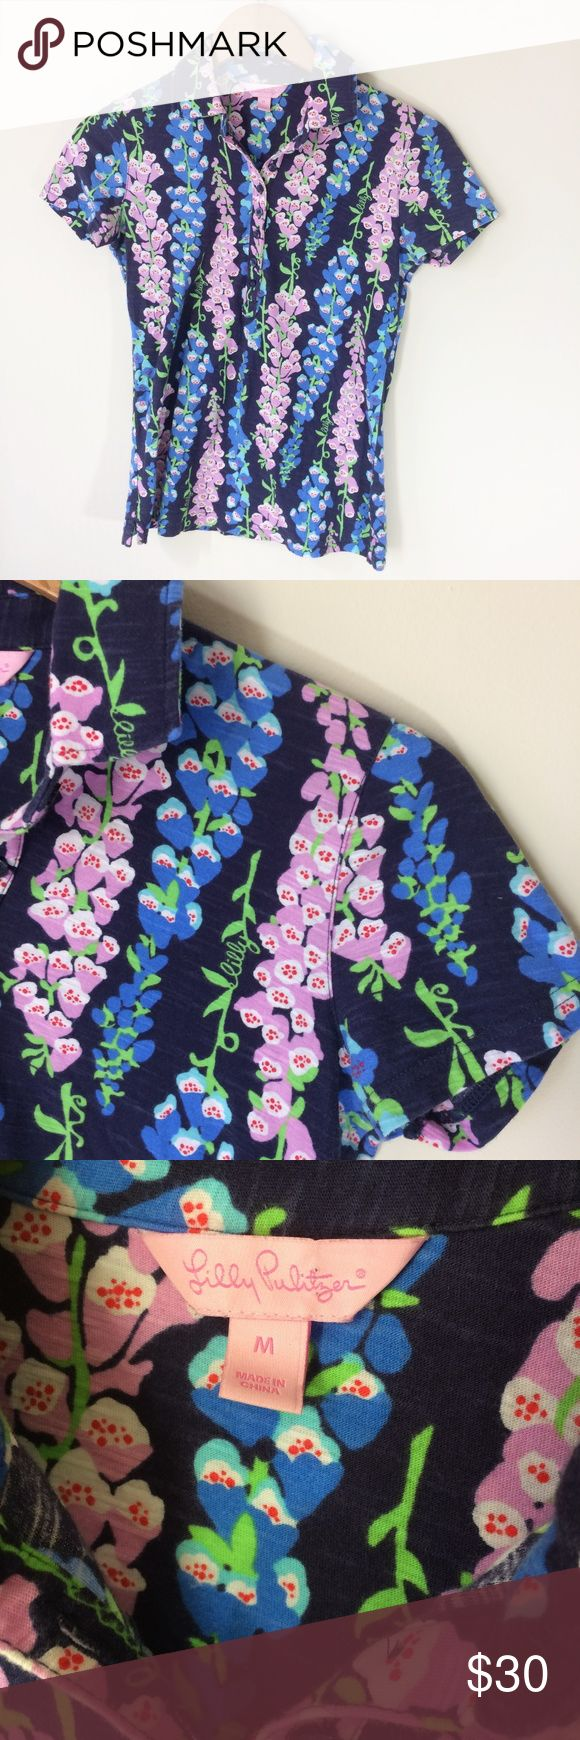 """Lilly Pulitzer Cotton Polo Shirt in Foxglove Lilly Pulitzer Cotton Polo Shirt in Foxglove. Size Medium. Measurements: Armpit to armpit: 16""""/Length: 24.5"""". 100% Cotton. Short sleeves. Lovely print in pink, blue, and green. Like new condition with no flaws, stains, or holes. From a smoke and pet free home. Offers warmly welcomed! Lilly Pulitzer Tops"""